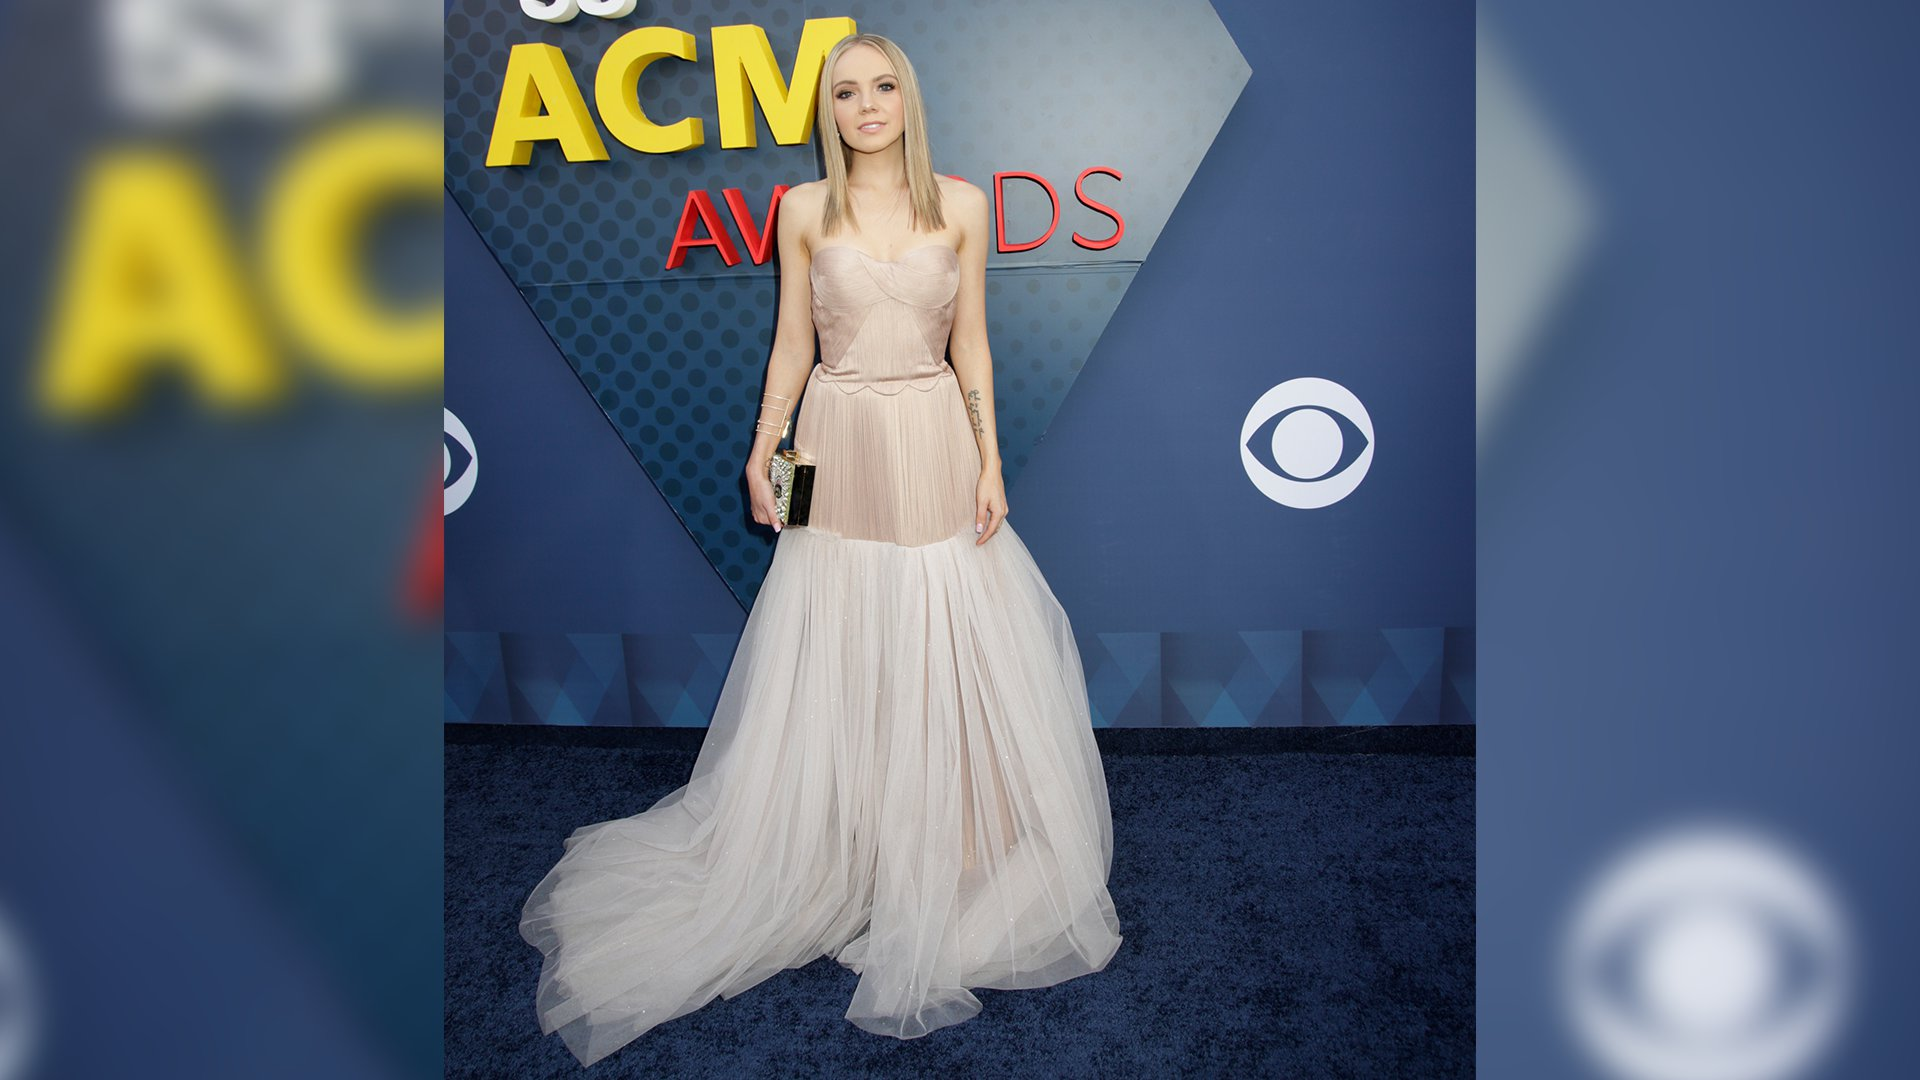 Danielle Bradbery glides down the ACM red carpet in a pale pink evening gown with toile overlay.